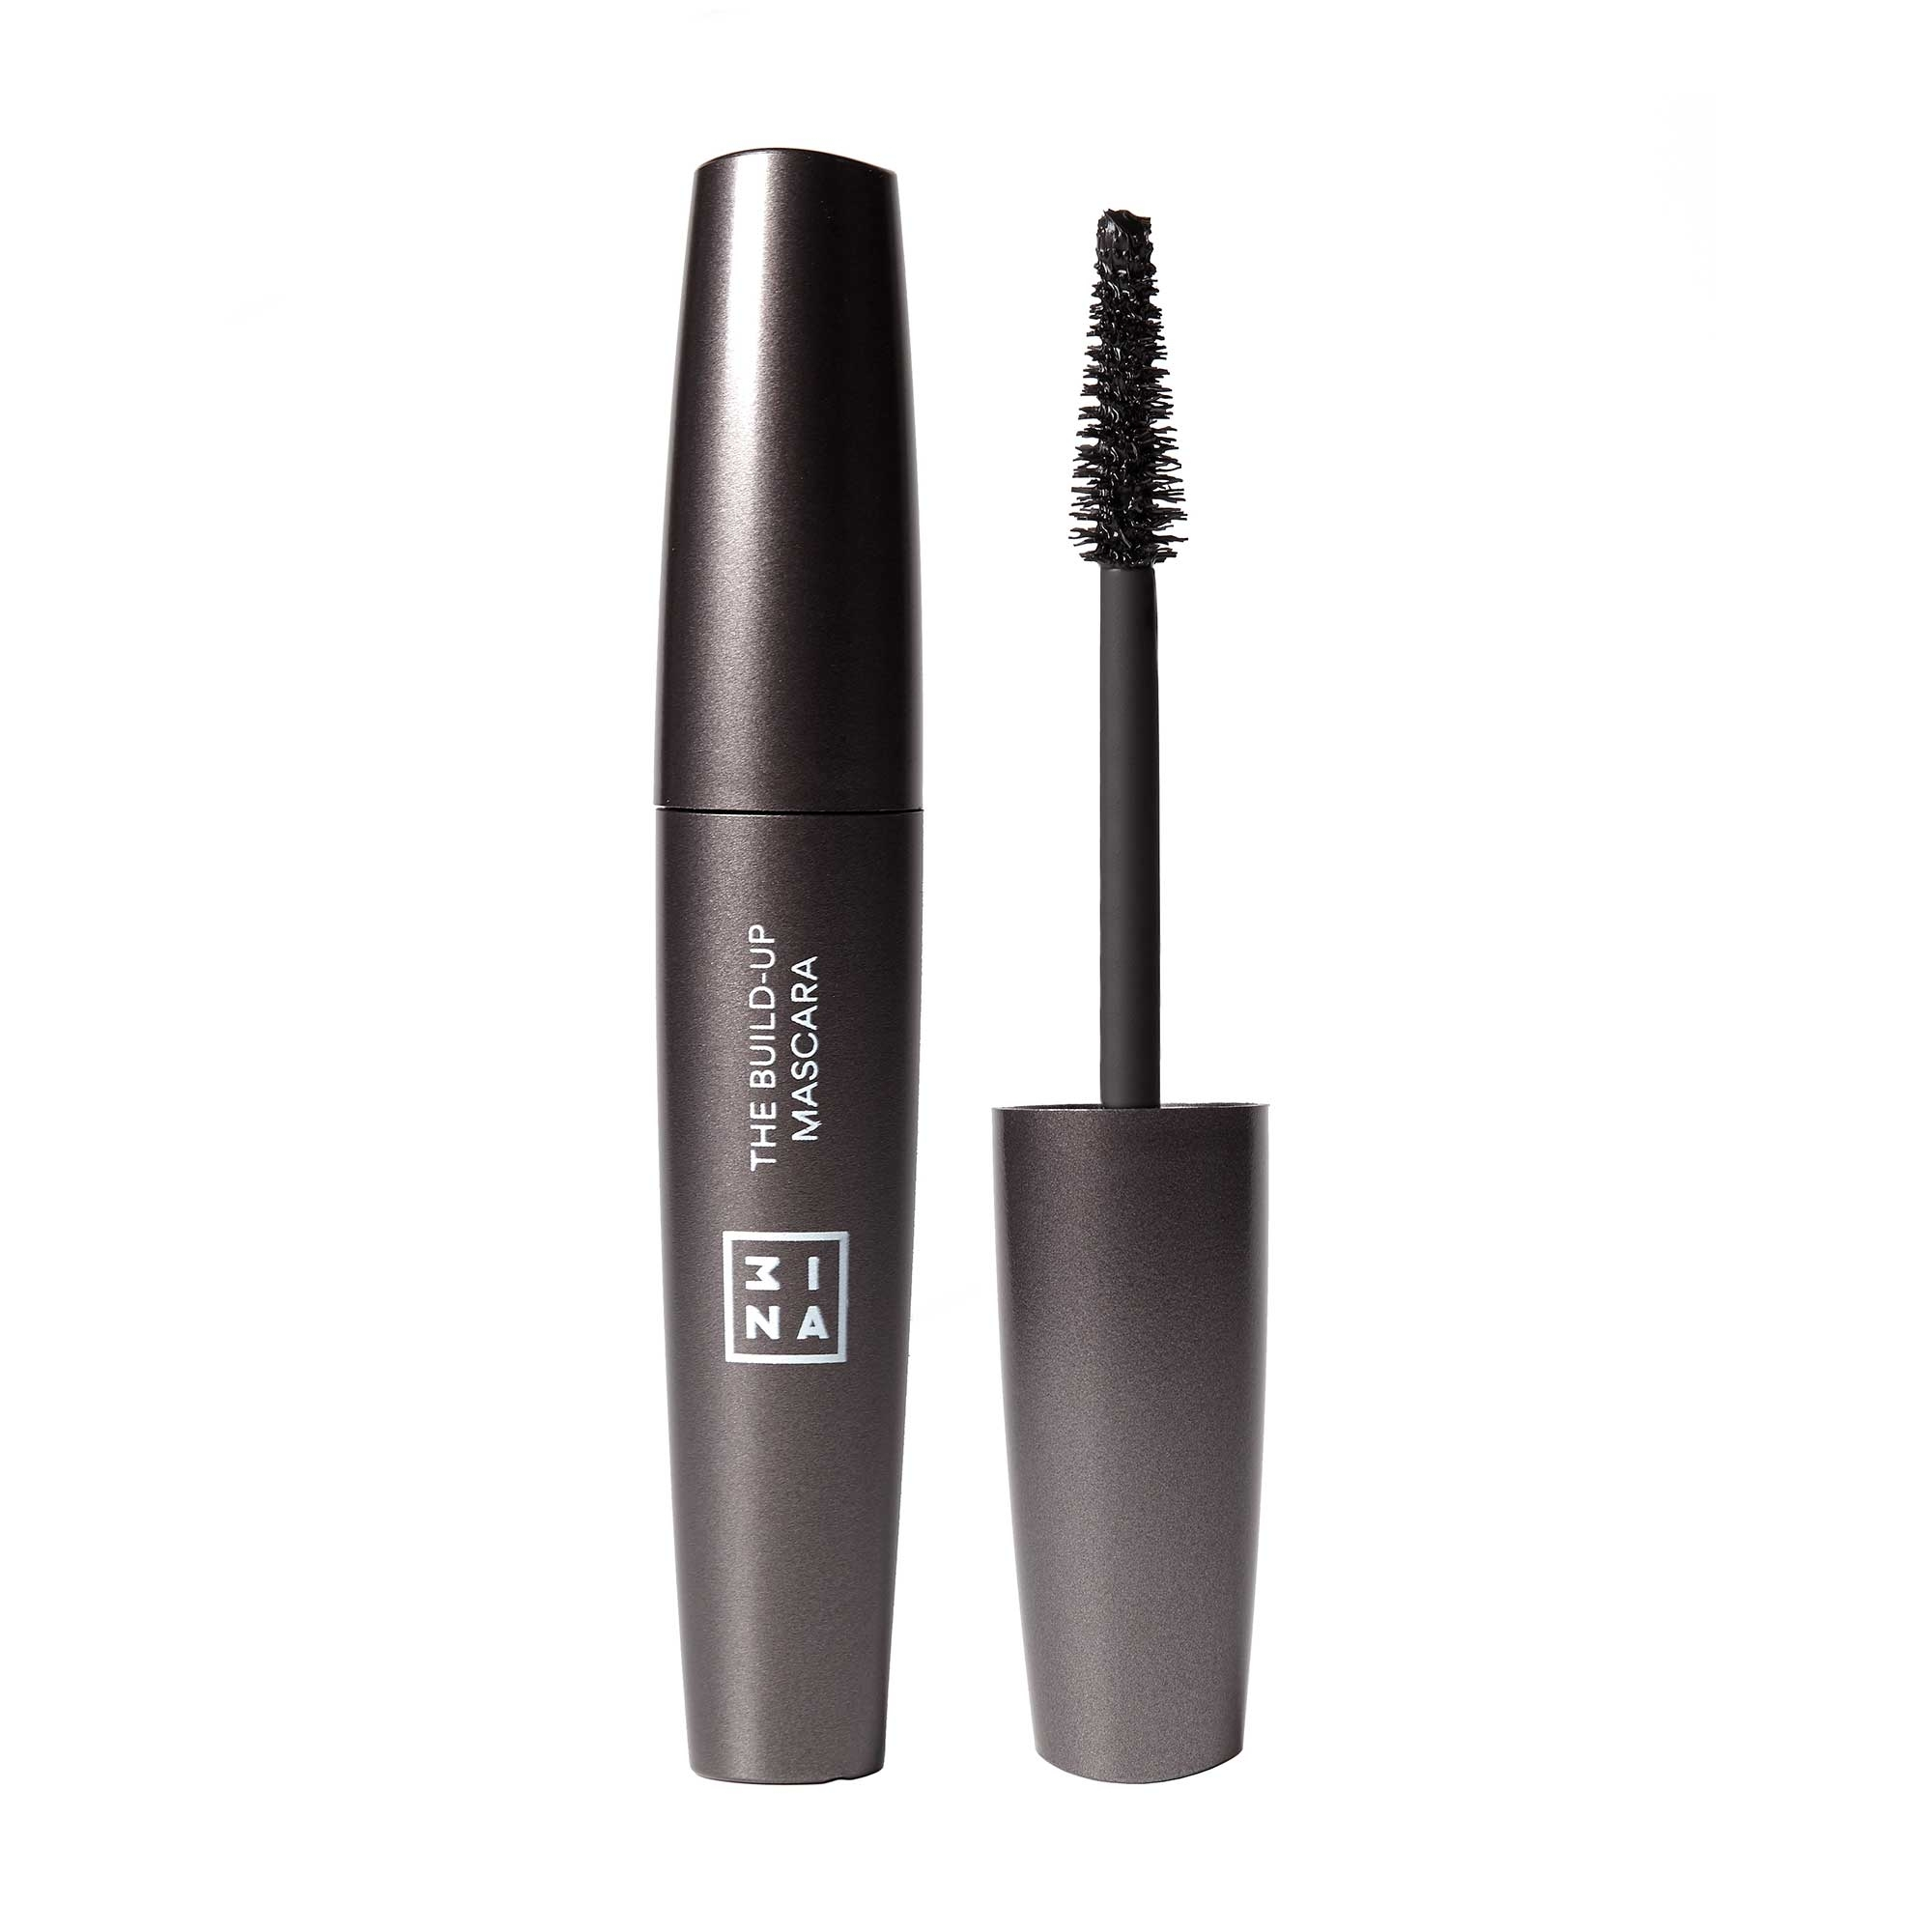 3INA Makeup | The Build-Up Mascara Black